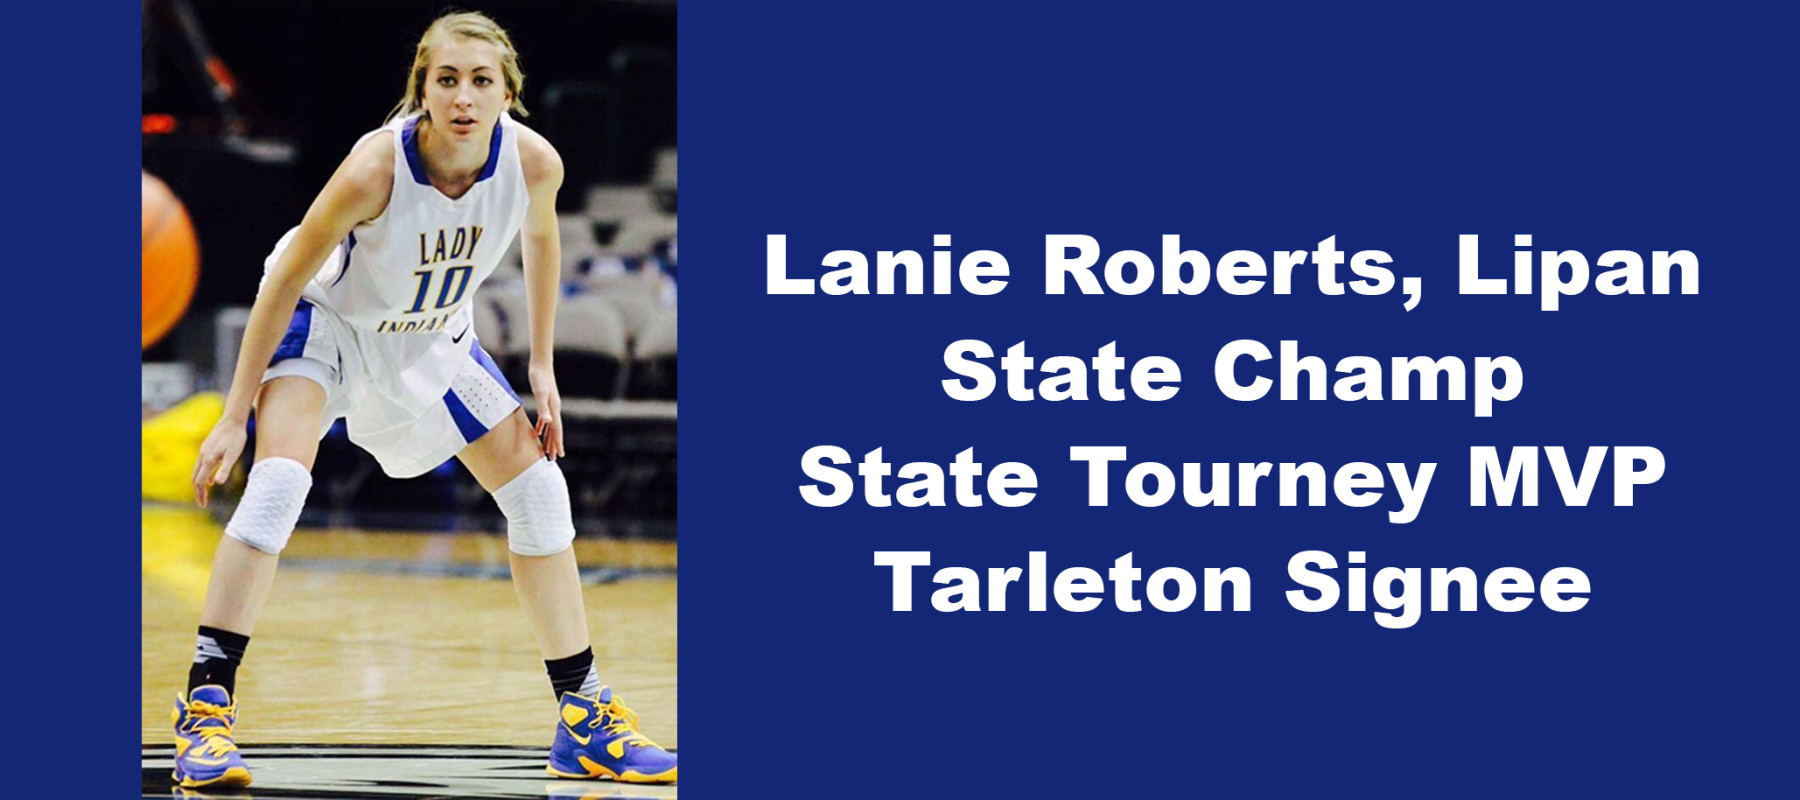 Lanie Roberts feature